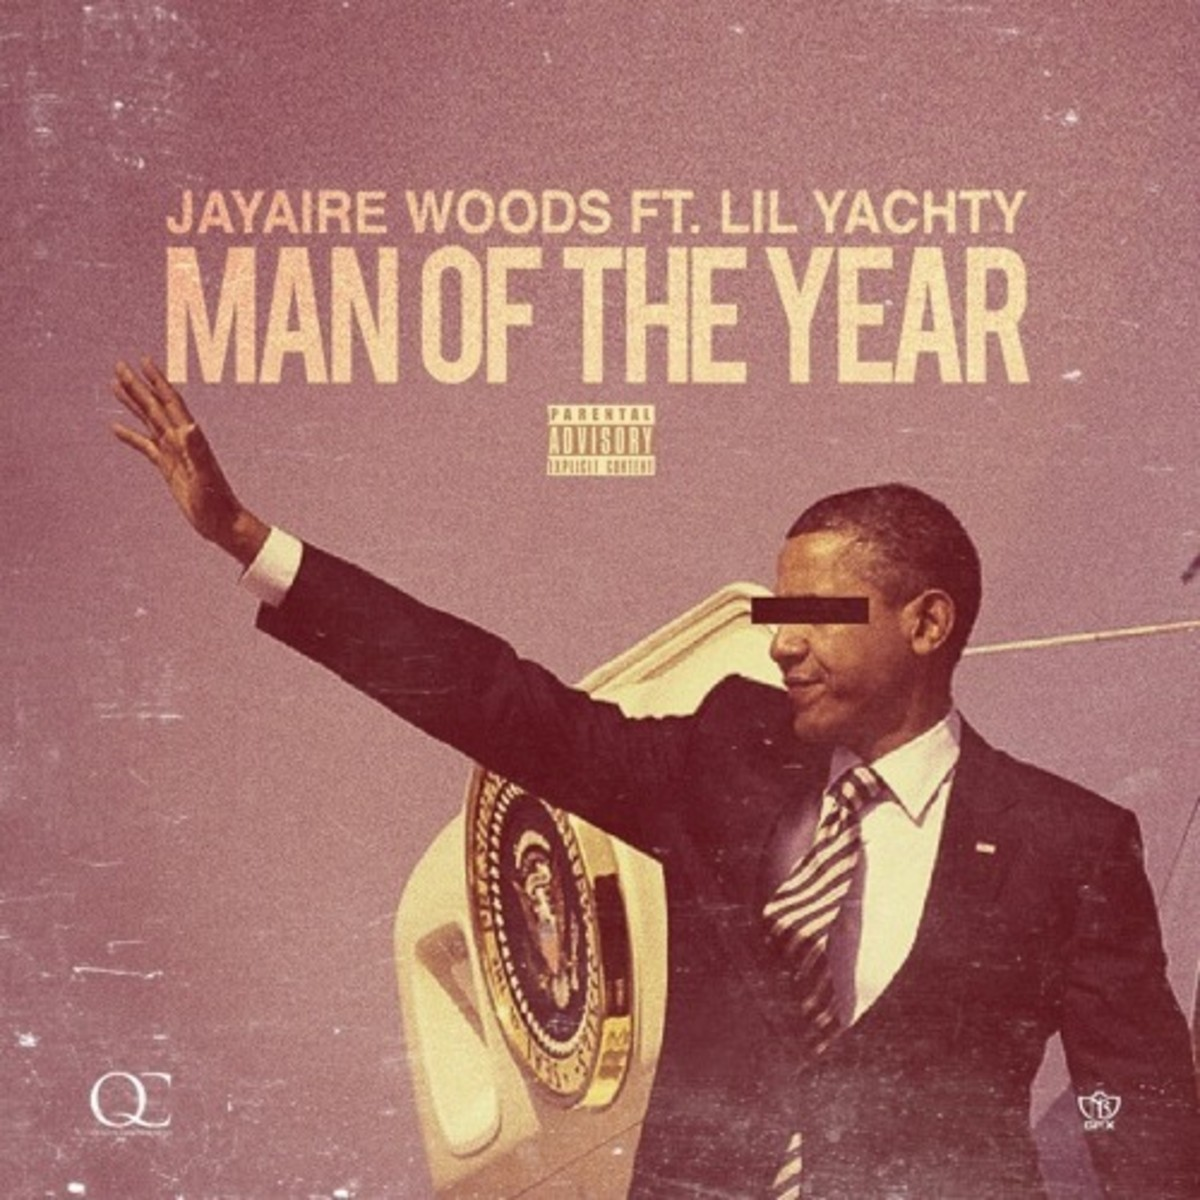 jayaire-woods-man-of-the-year.jpg